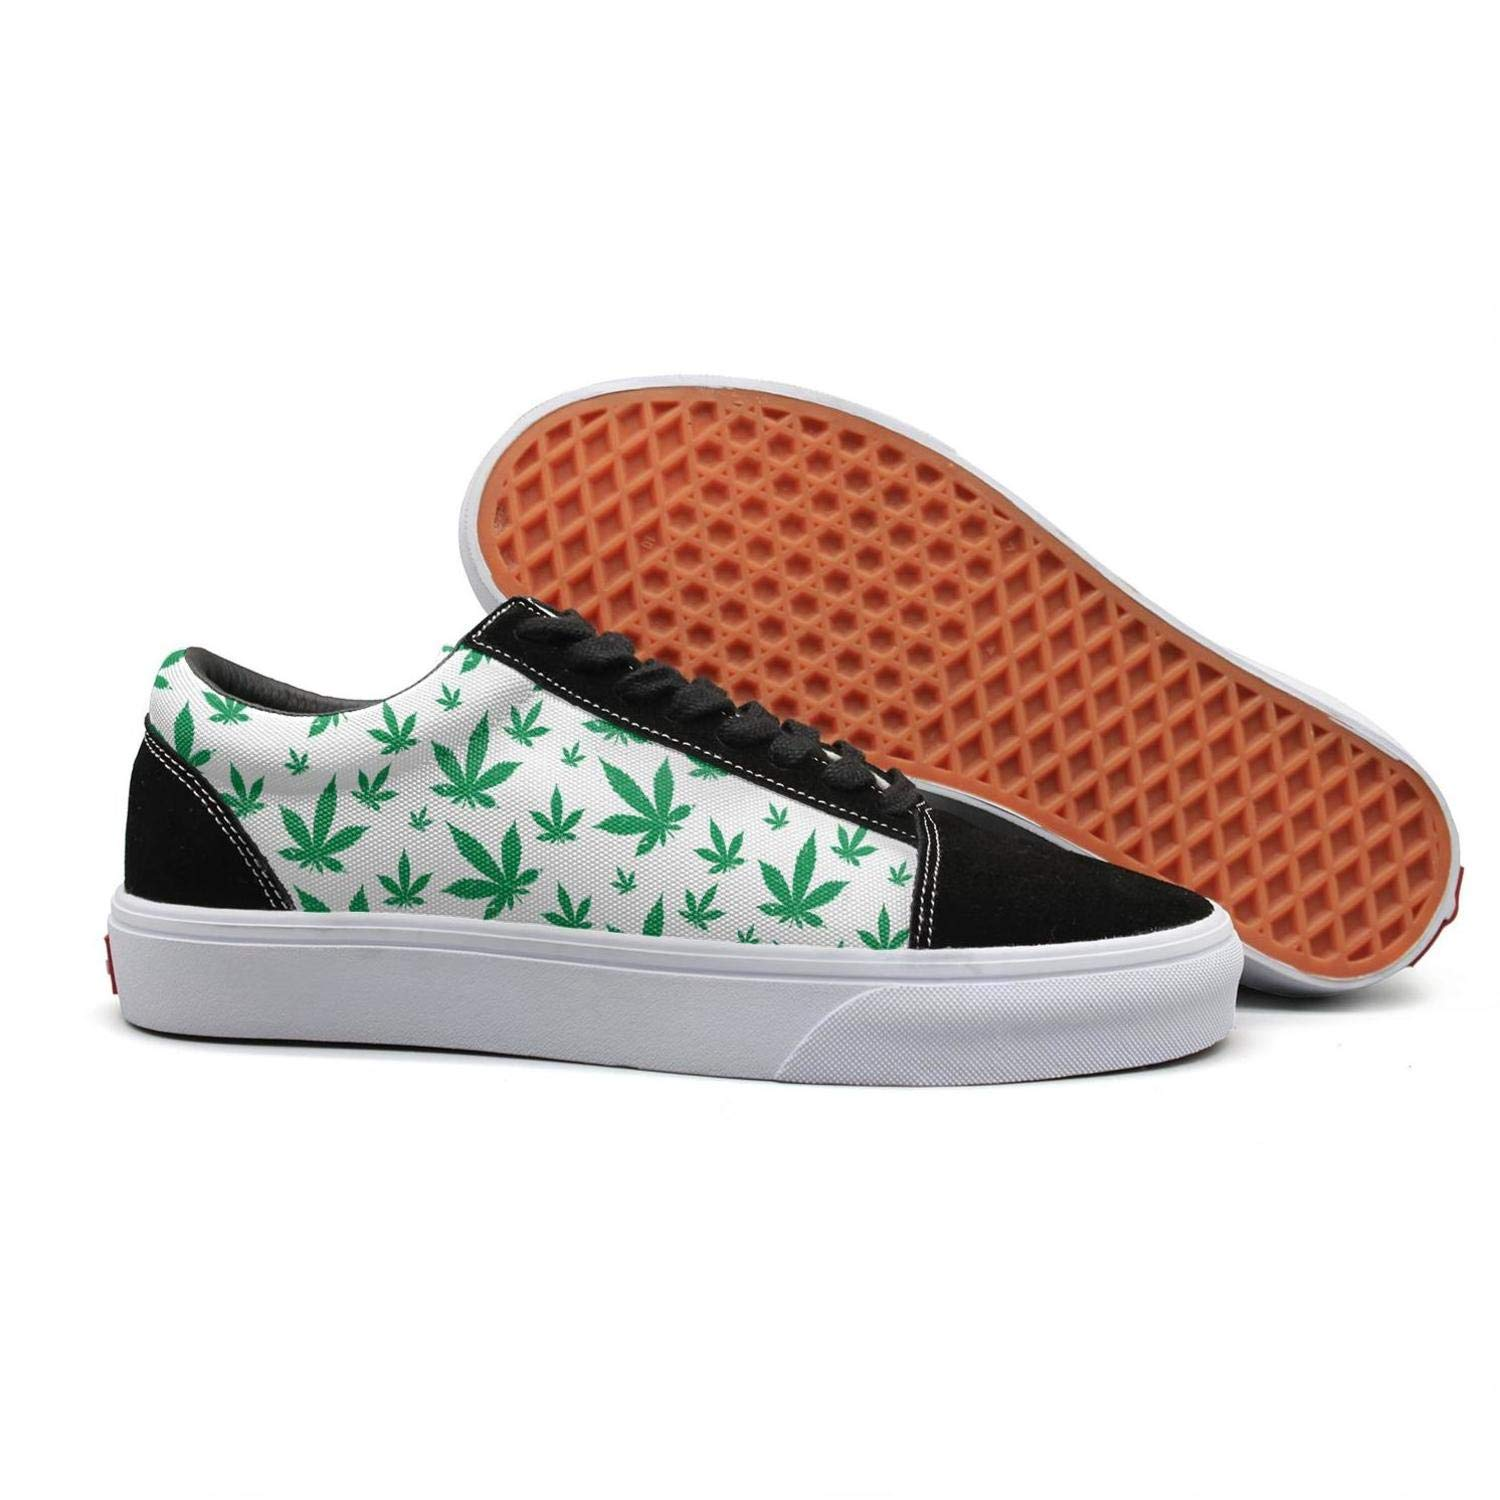 55e9eba77df8c Green Outdoor Cannabis Lace Up Sneakers Canvas Skate Shoes for Women ...